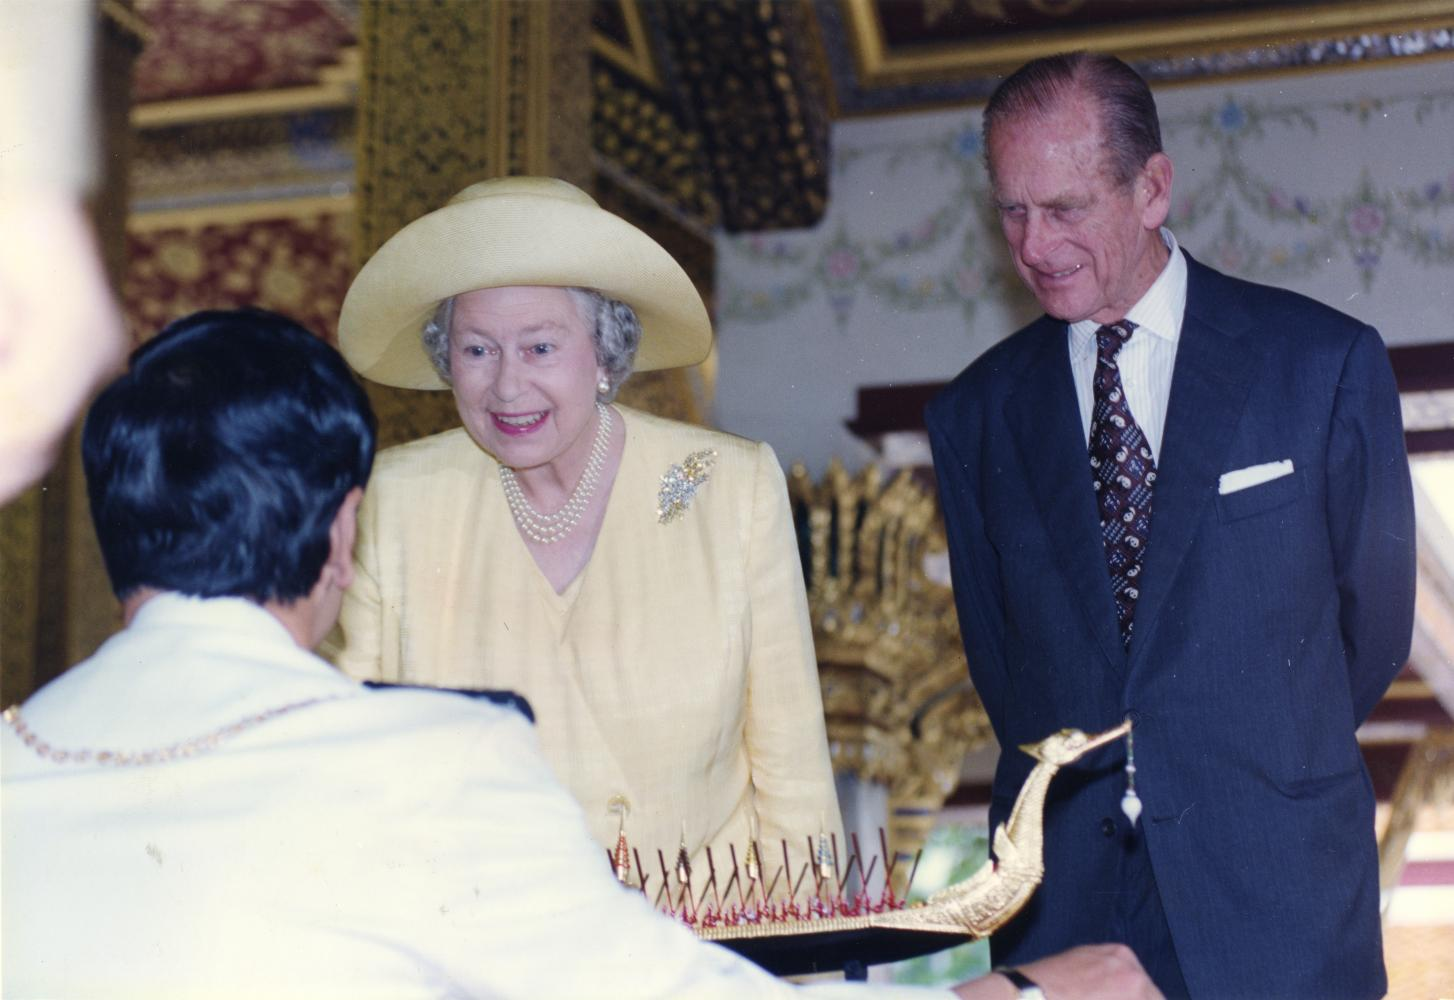 Queen Elizabeth and Prince Philip visit Thailand in October 1996, celebrating the 50th anniversary (Golden Jubilee) of His Majesty King Bhumibol Adulyadej The Great's accession to the throne in the same year.(Bangkok Post Photo)